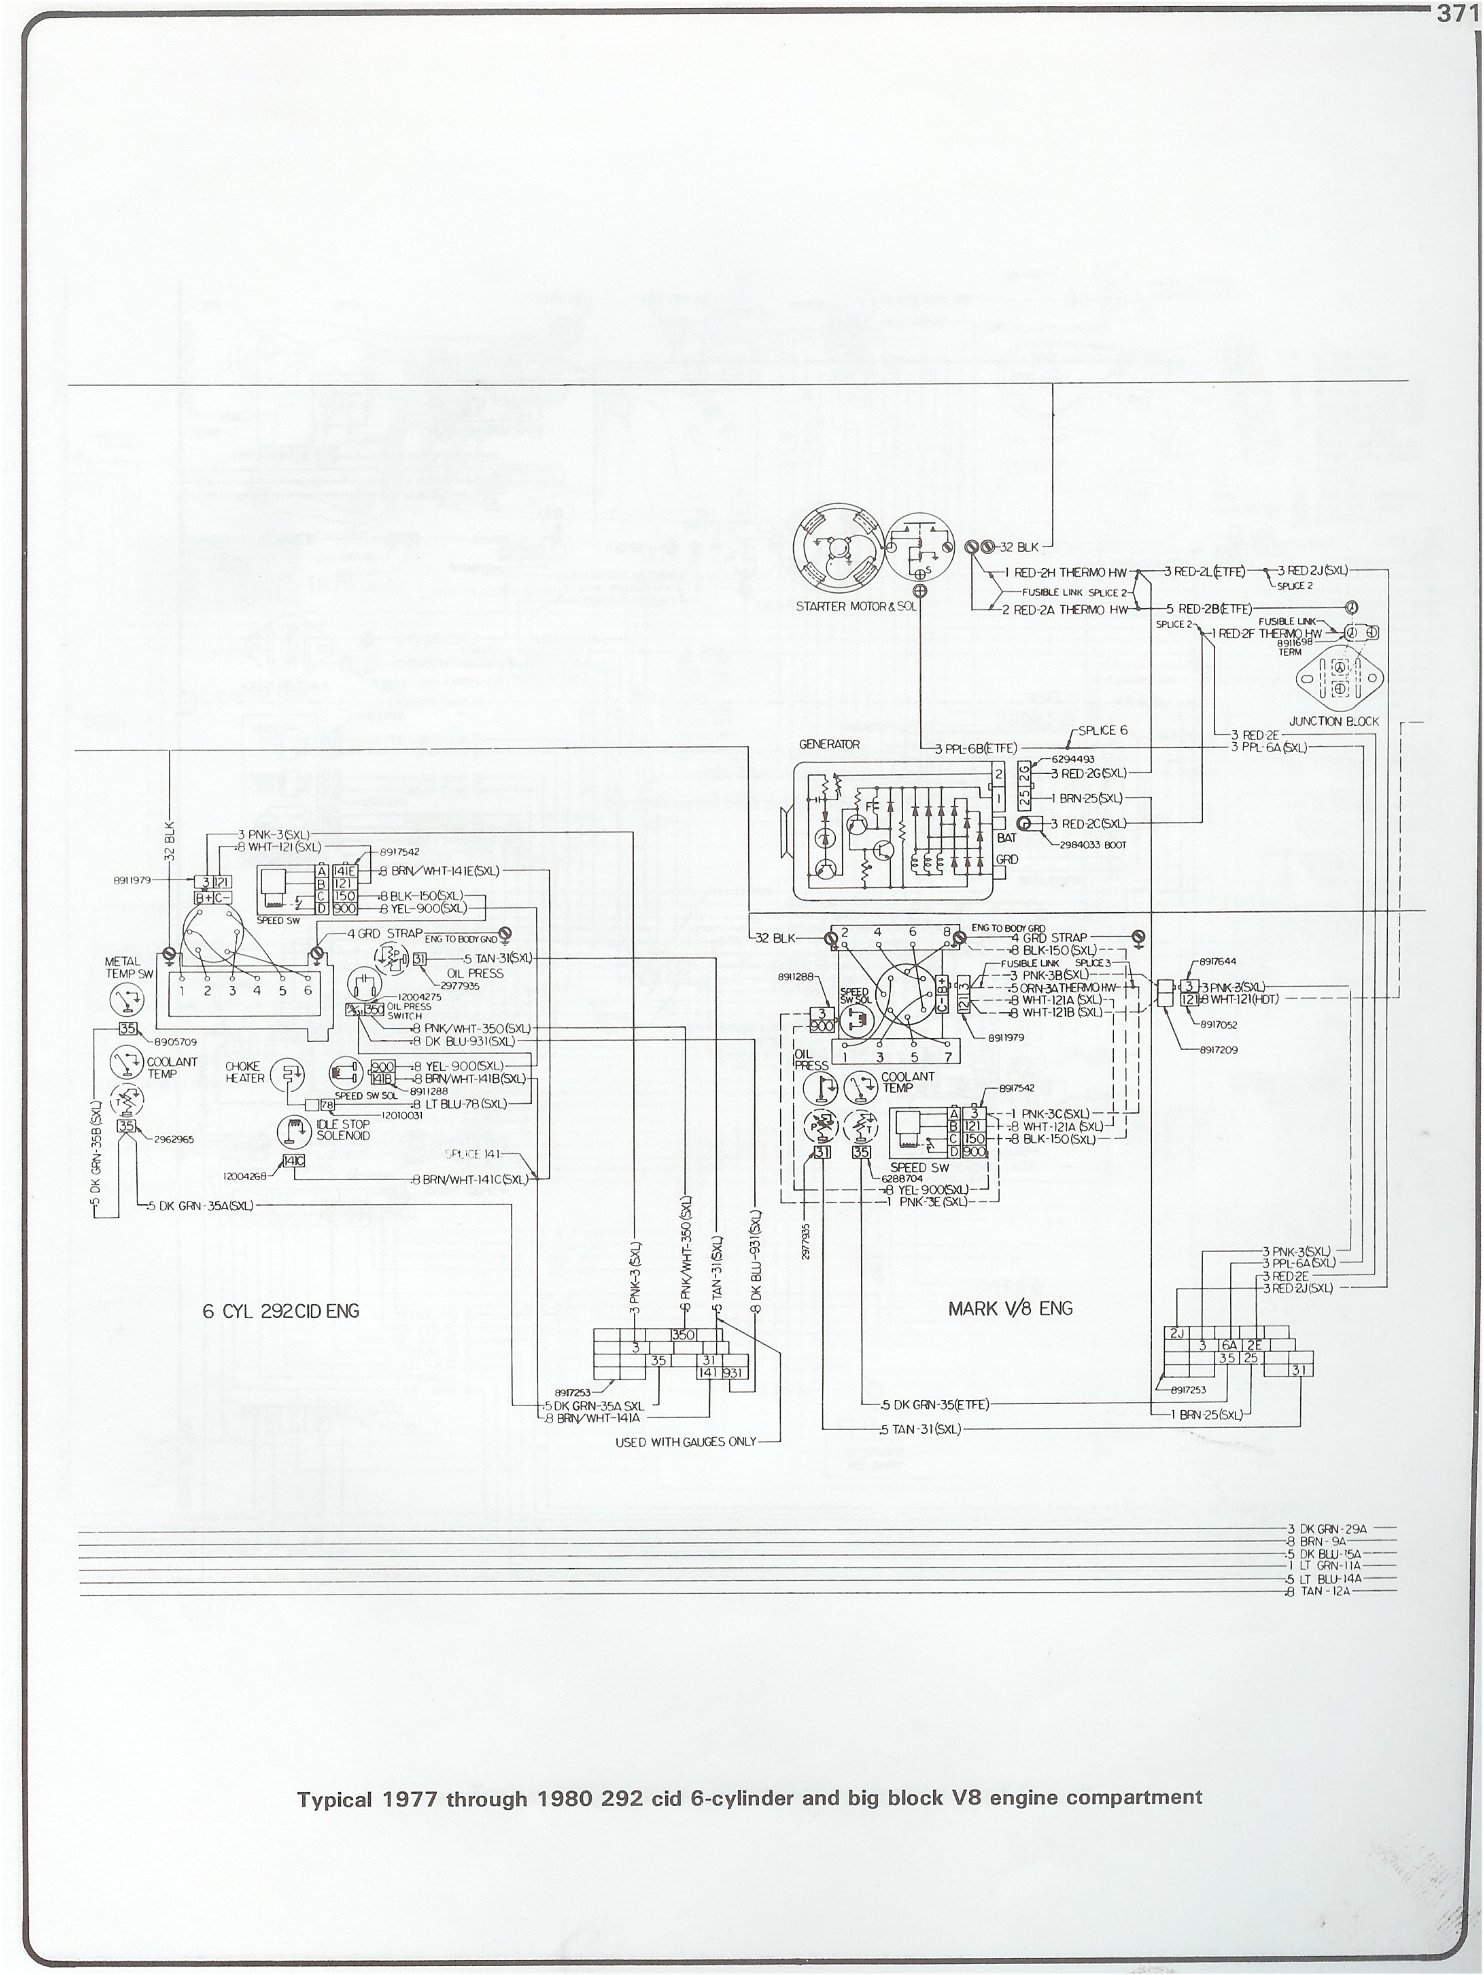 Complete 73 87 Wiring Diagrams Chevrolet Cruise Control Diagram 77 80 292 I6 And Bbc Engine